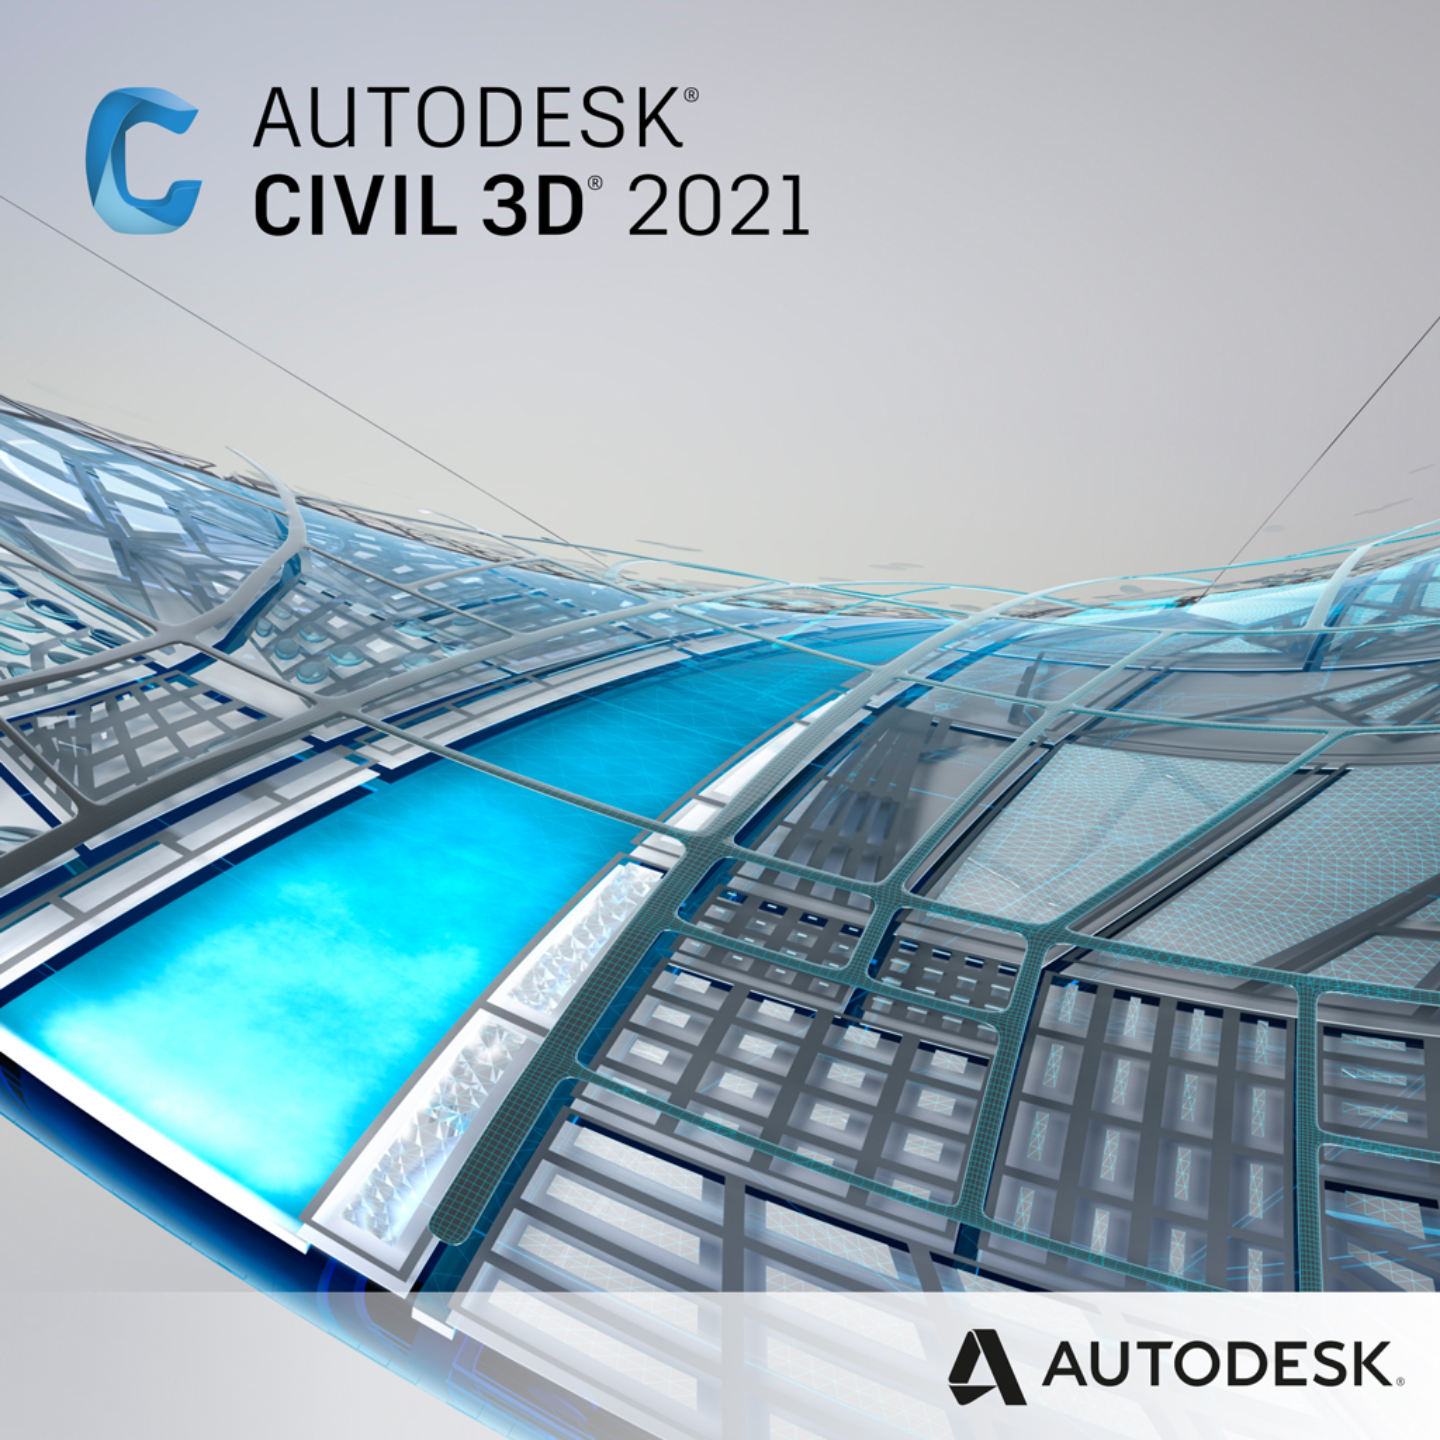 Autodesk AutoCAD Civil 3D 2021 Commercial (1-Year Subscription)